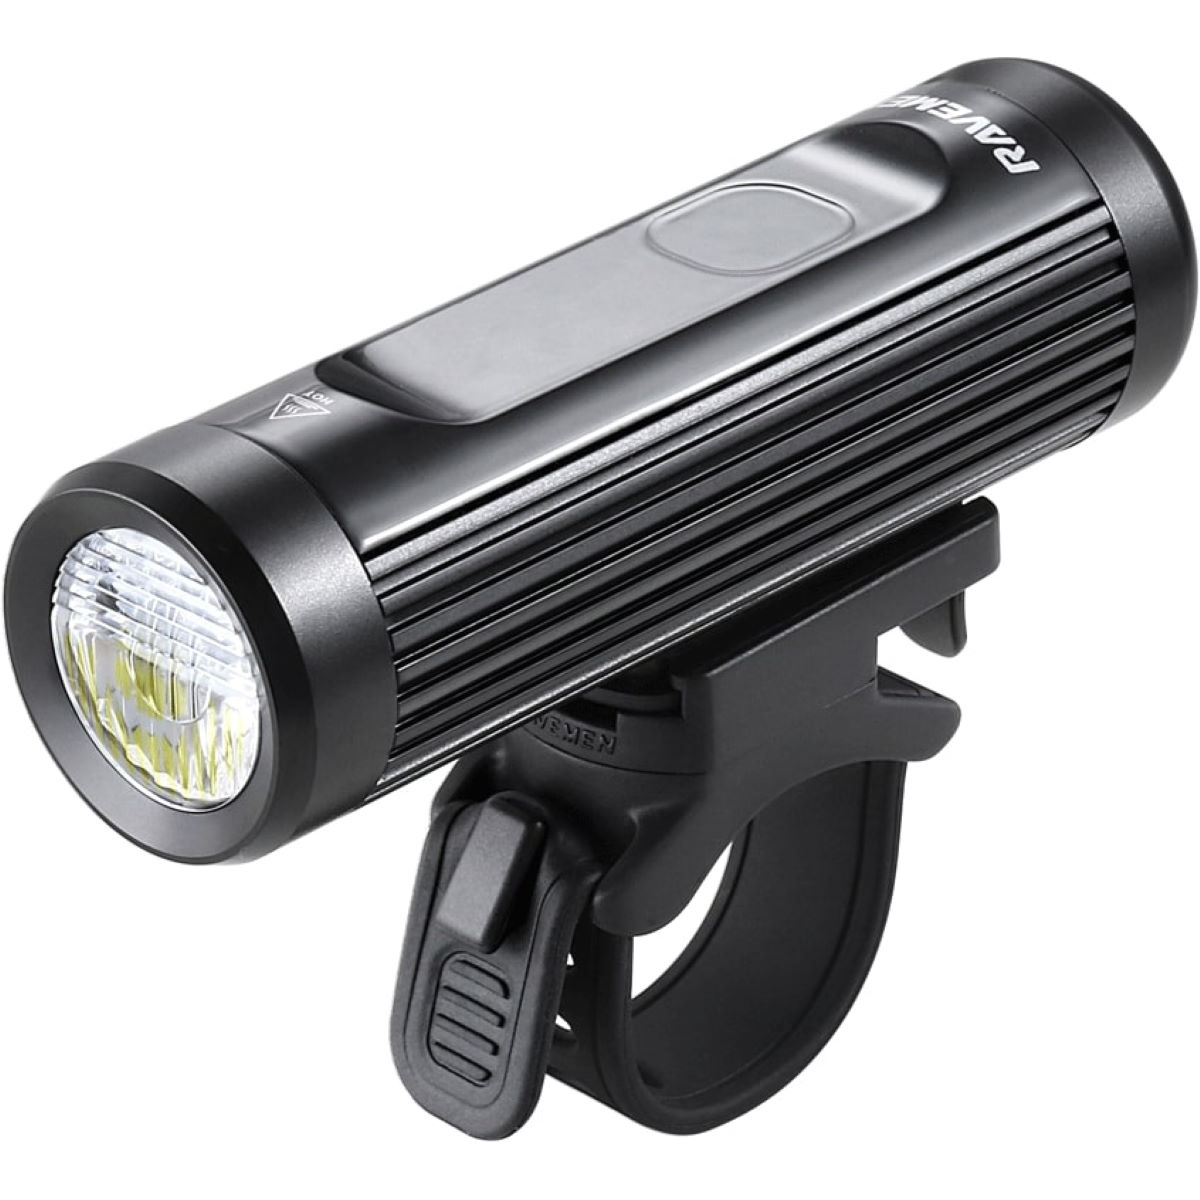 Ravemen Ravemen CR900 USB Rechargeable DuaLens Front Light with Re   Front Lights